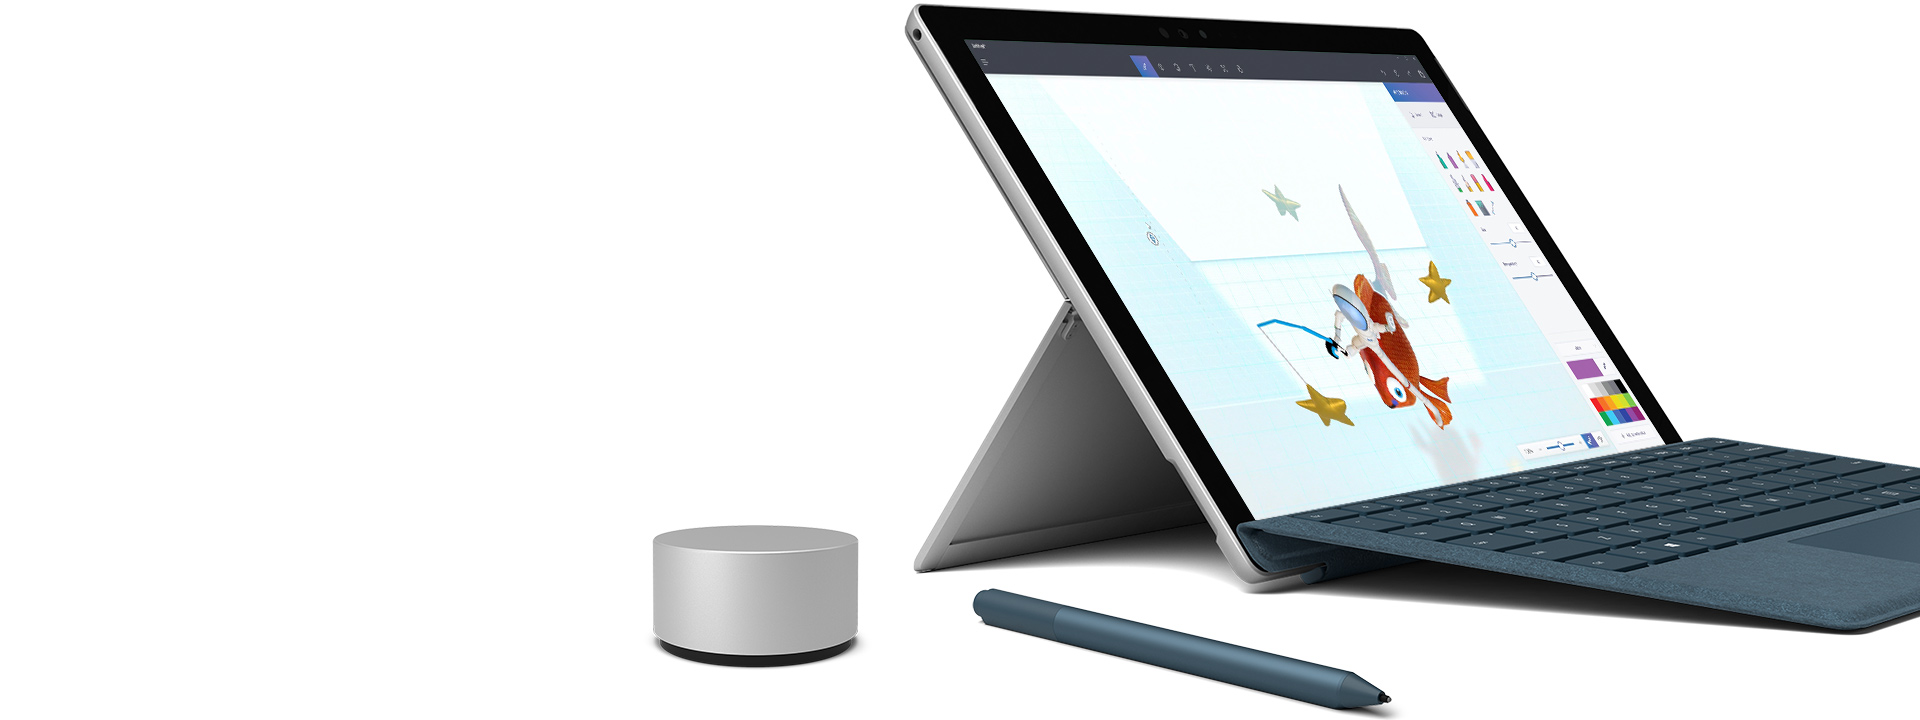 Surface Pro in Laptop Mode with Surface Dial, Pen, and Type Cover.